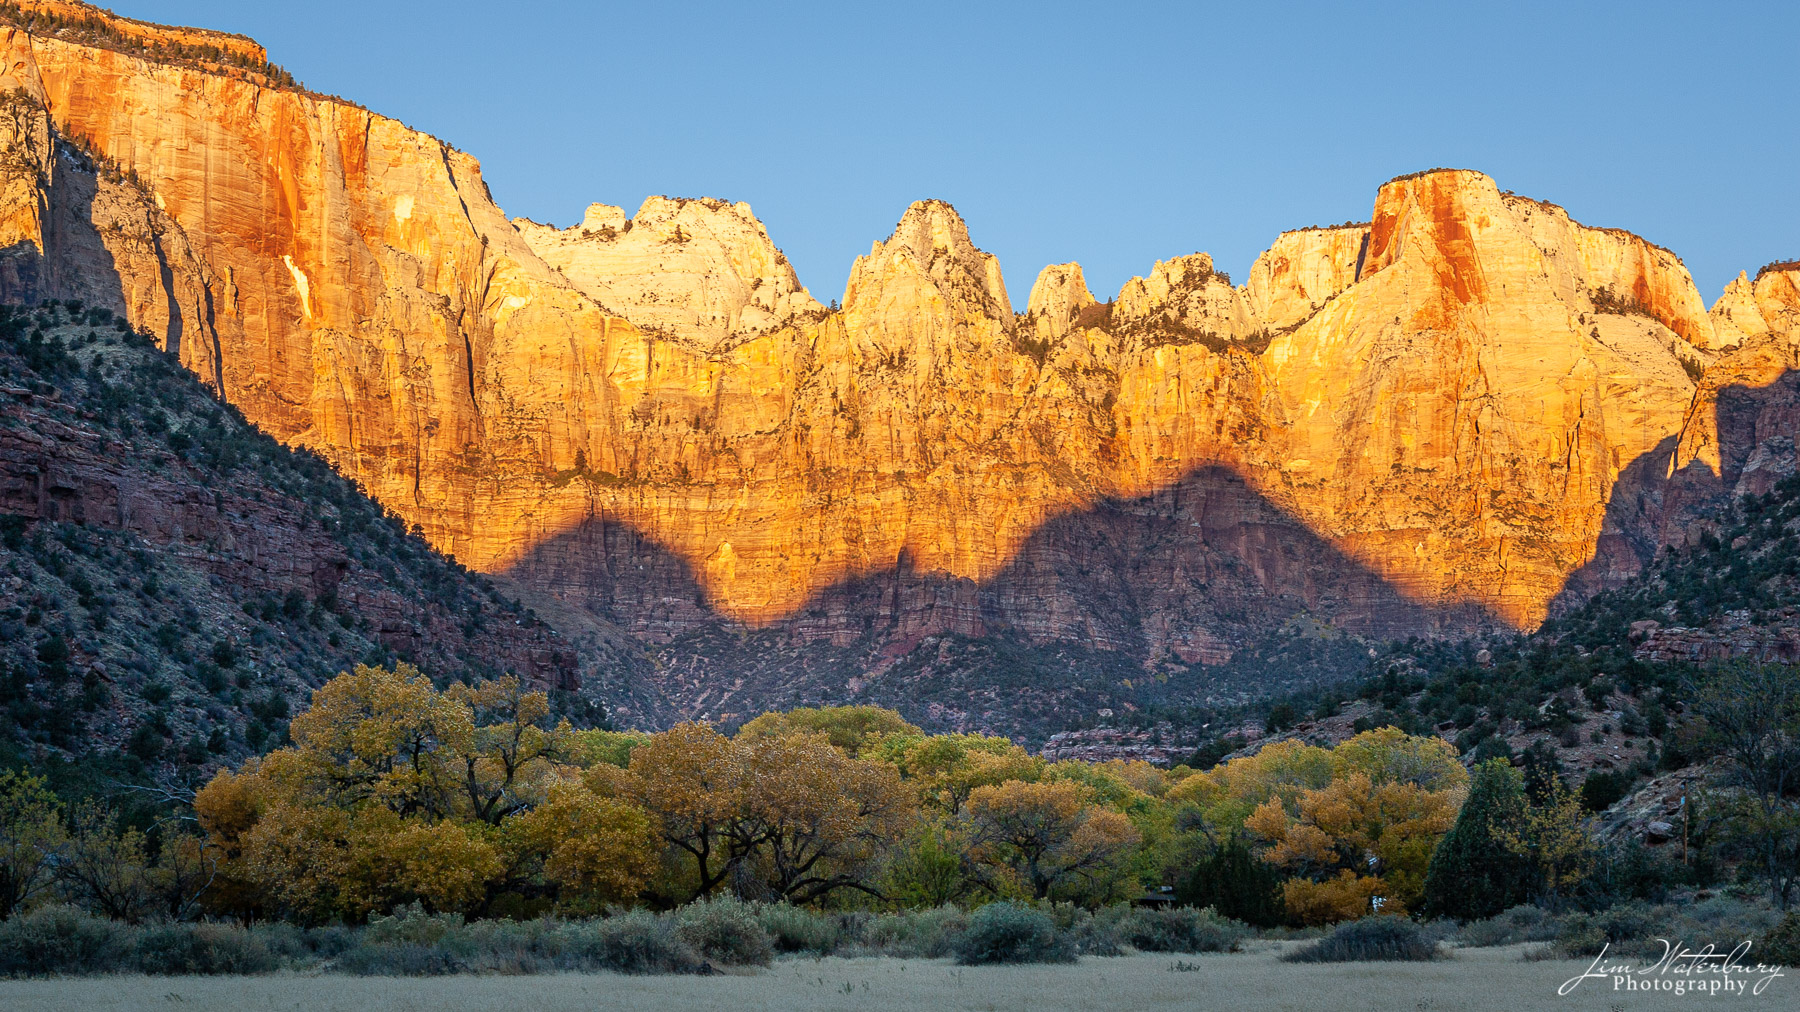 Sunrise on the canyon wall in Zion National Park, Utah.